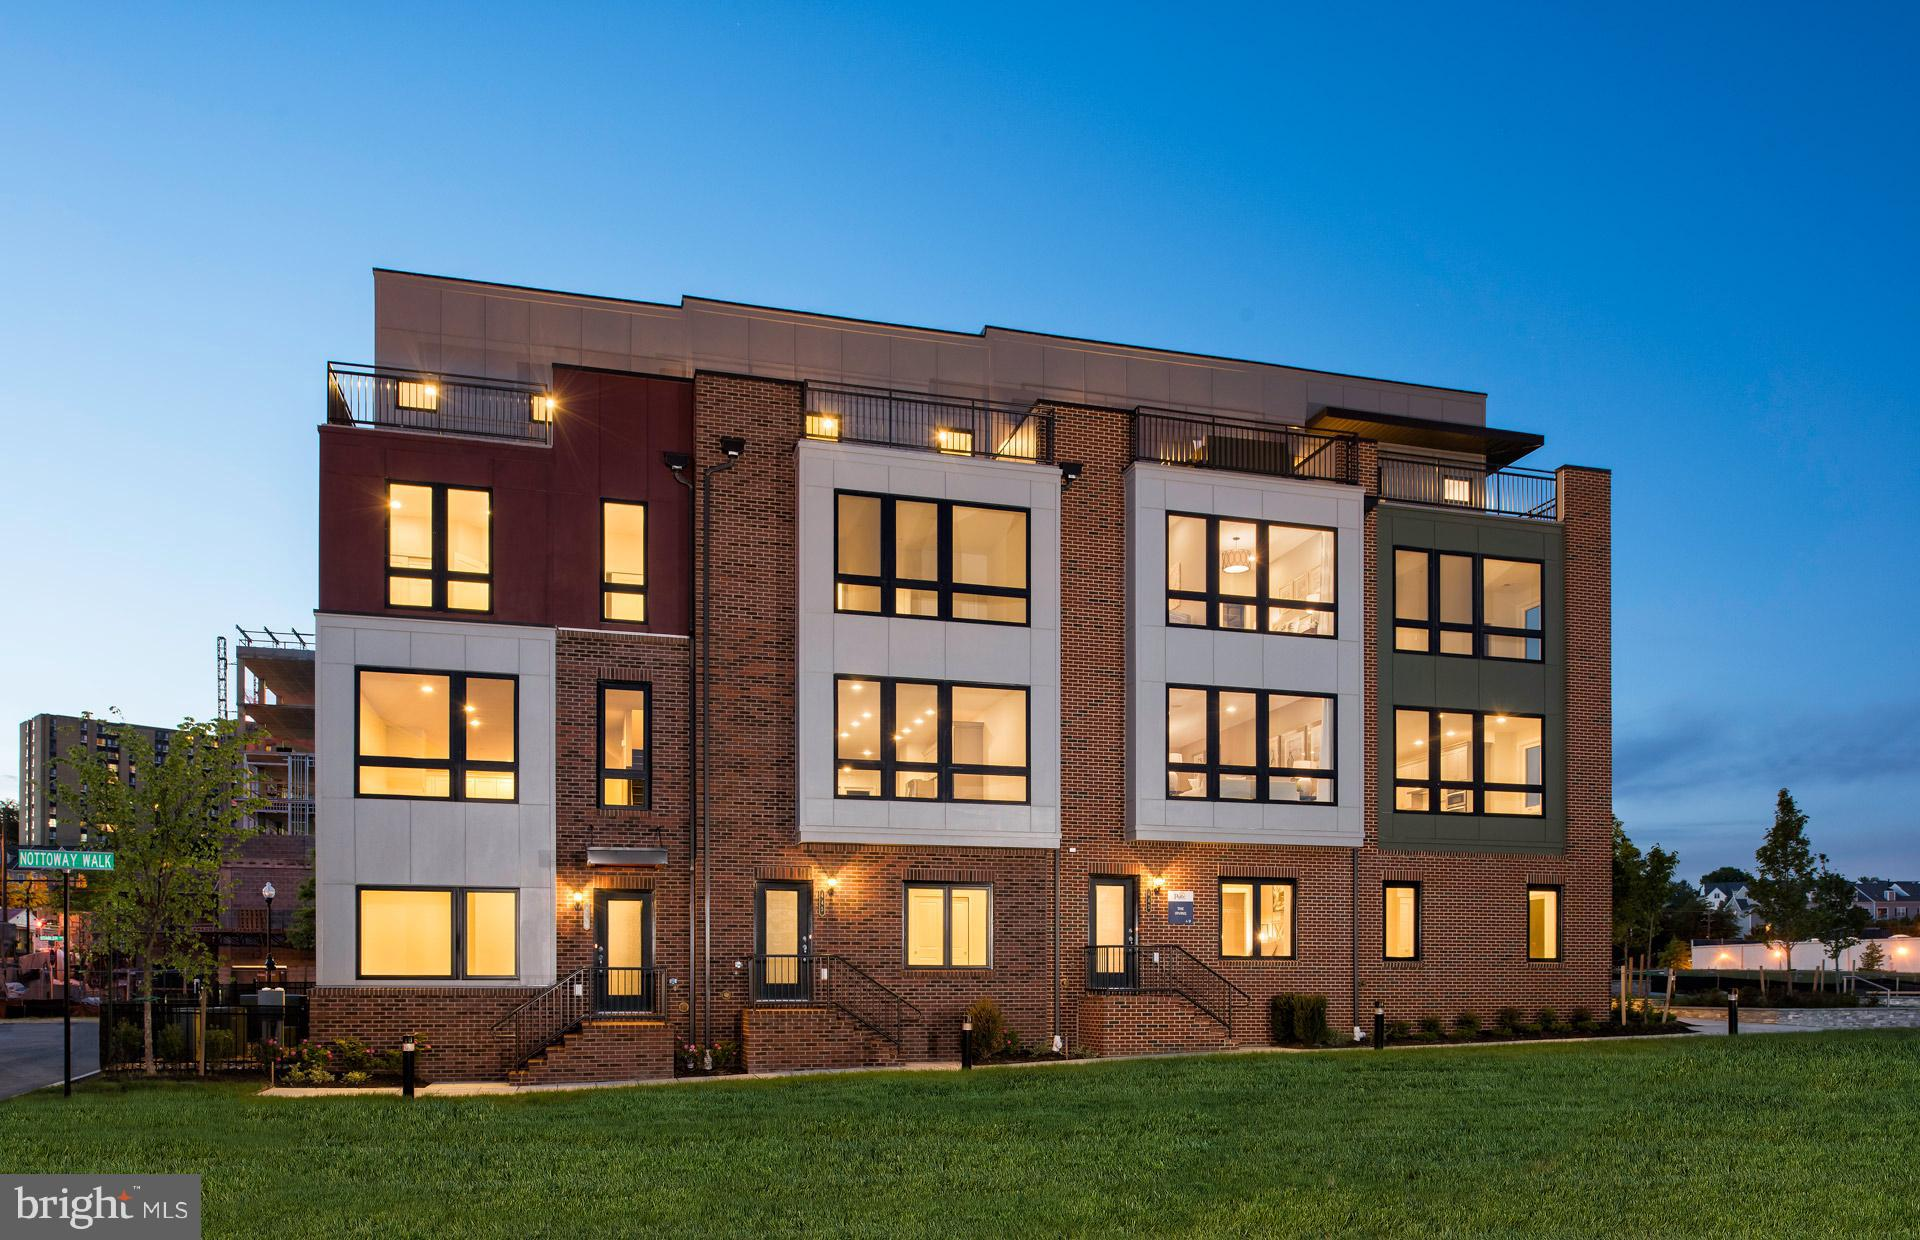 New 4 BDRM, 3.5 Bath, 2-Car Garage Pulte TH at Cameron Park! Spacious 4 Story w/Loft and Rooftop Terrace. Includes Hardwood Floors, 2 WIC in Owners Suite, and Contemporary Style w/Oversized Windows throughout! Fastest Selling Community in the Heart of Alexandria's West End. Close to Parks/Rec, Shopping, Dining, and 0.5 mile from VanDorn Metro.